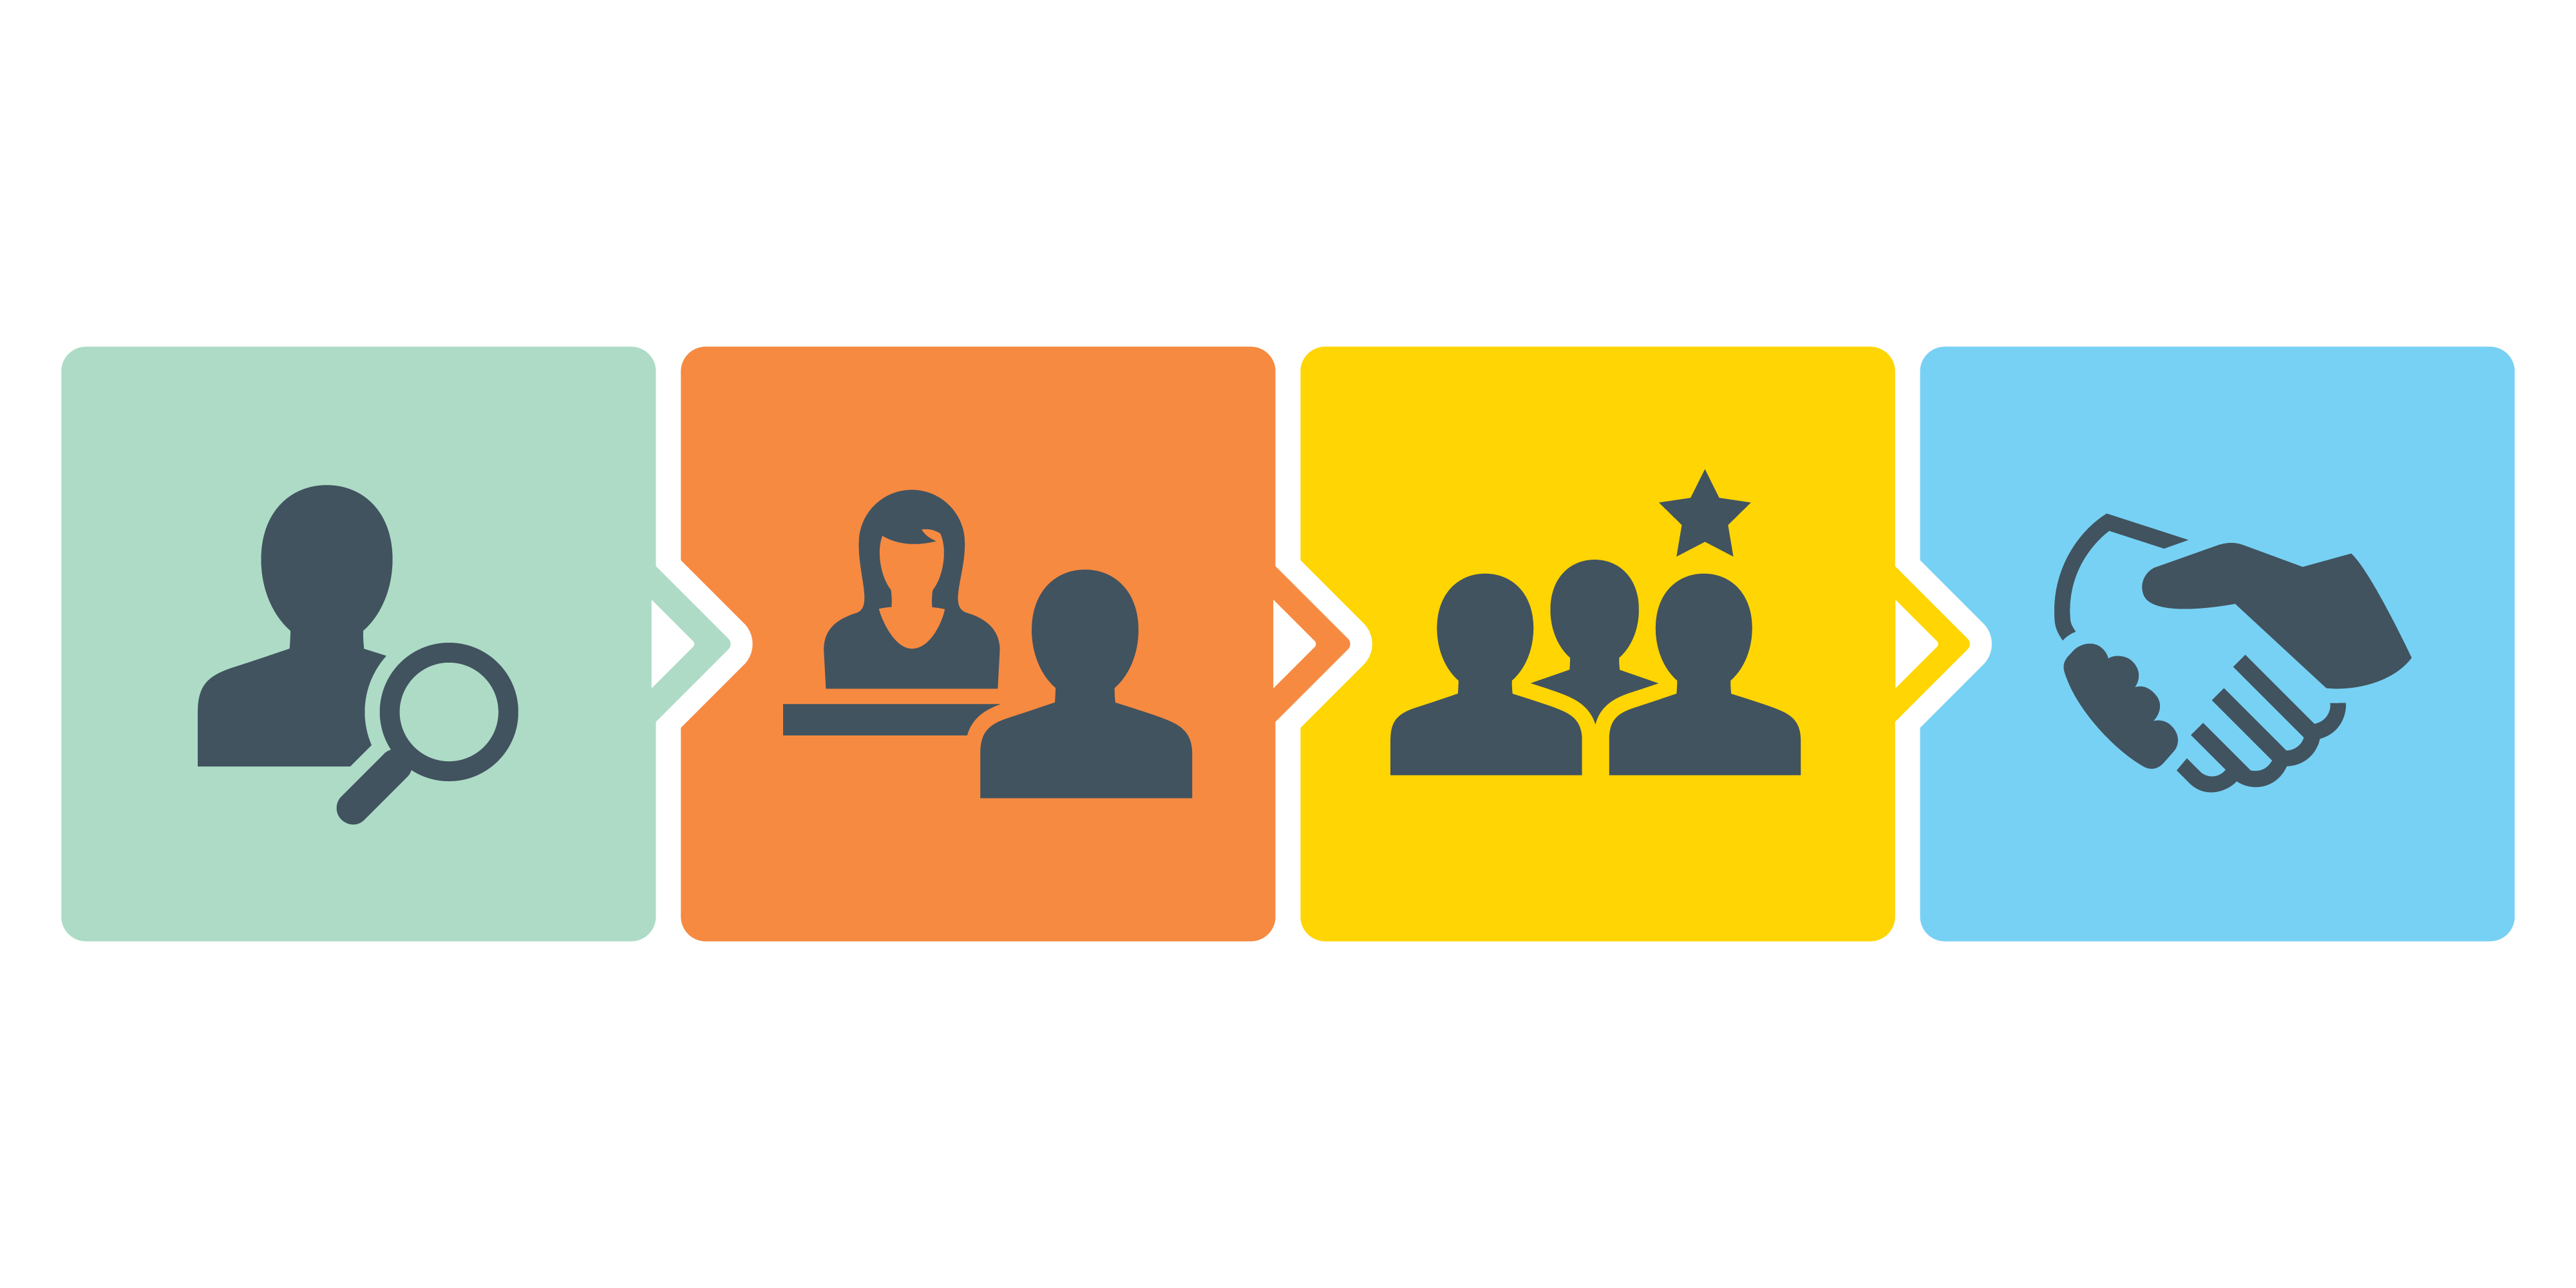 4 people process clipart